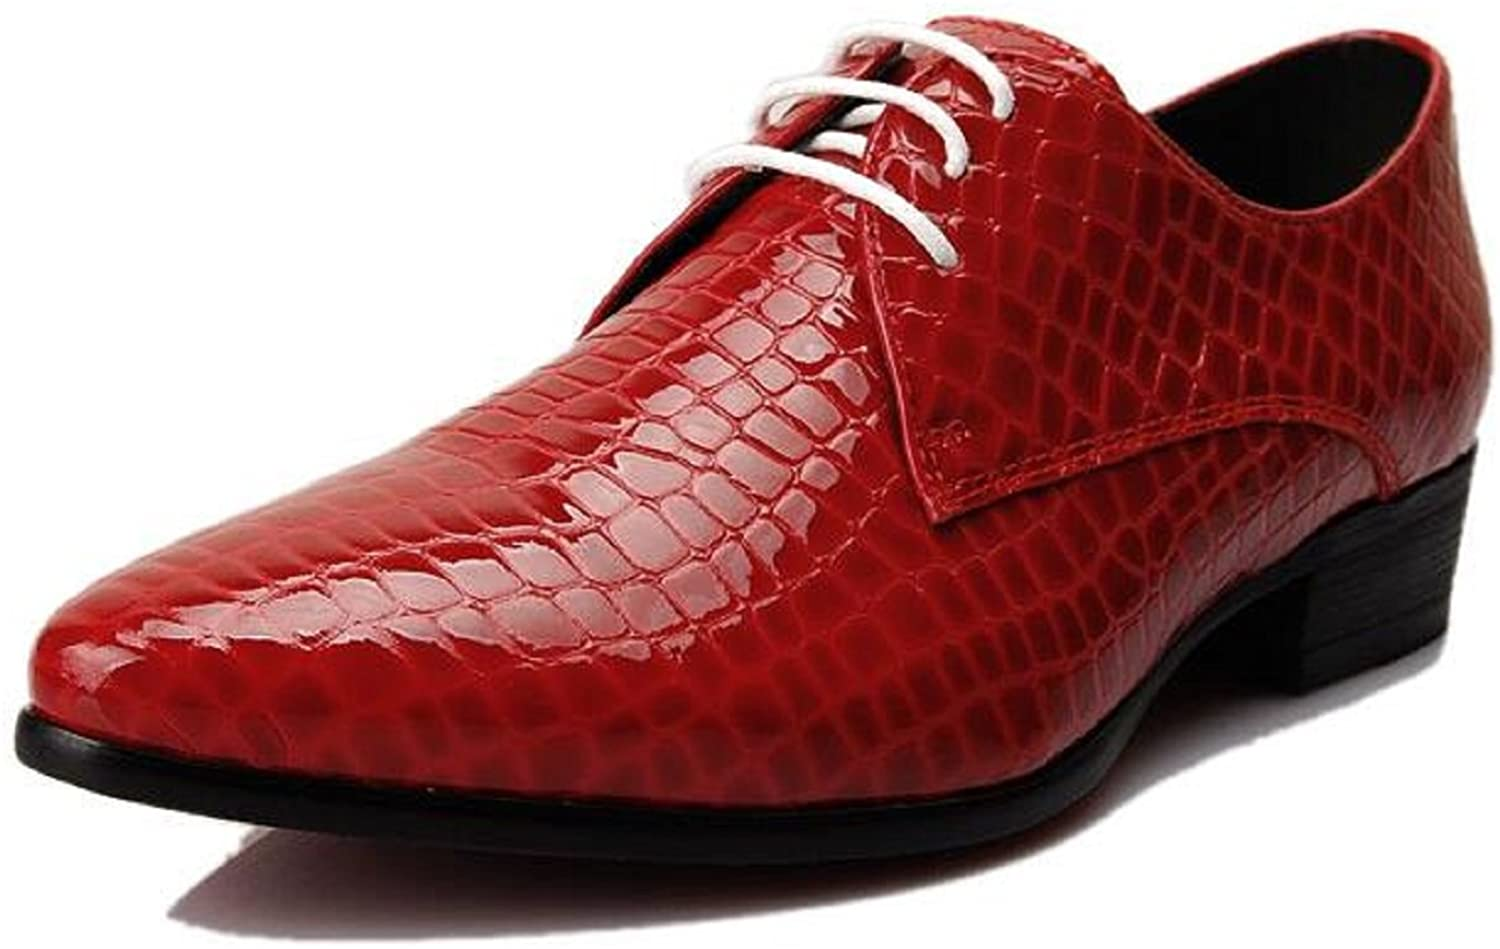 HAPPYSHOP(TM Mens British Style Pint-Tipped Leather Business Shoes Lace-up Winklepickers (M